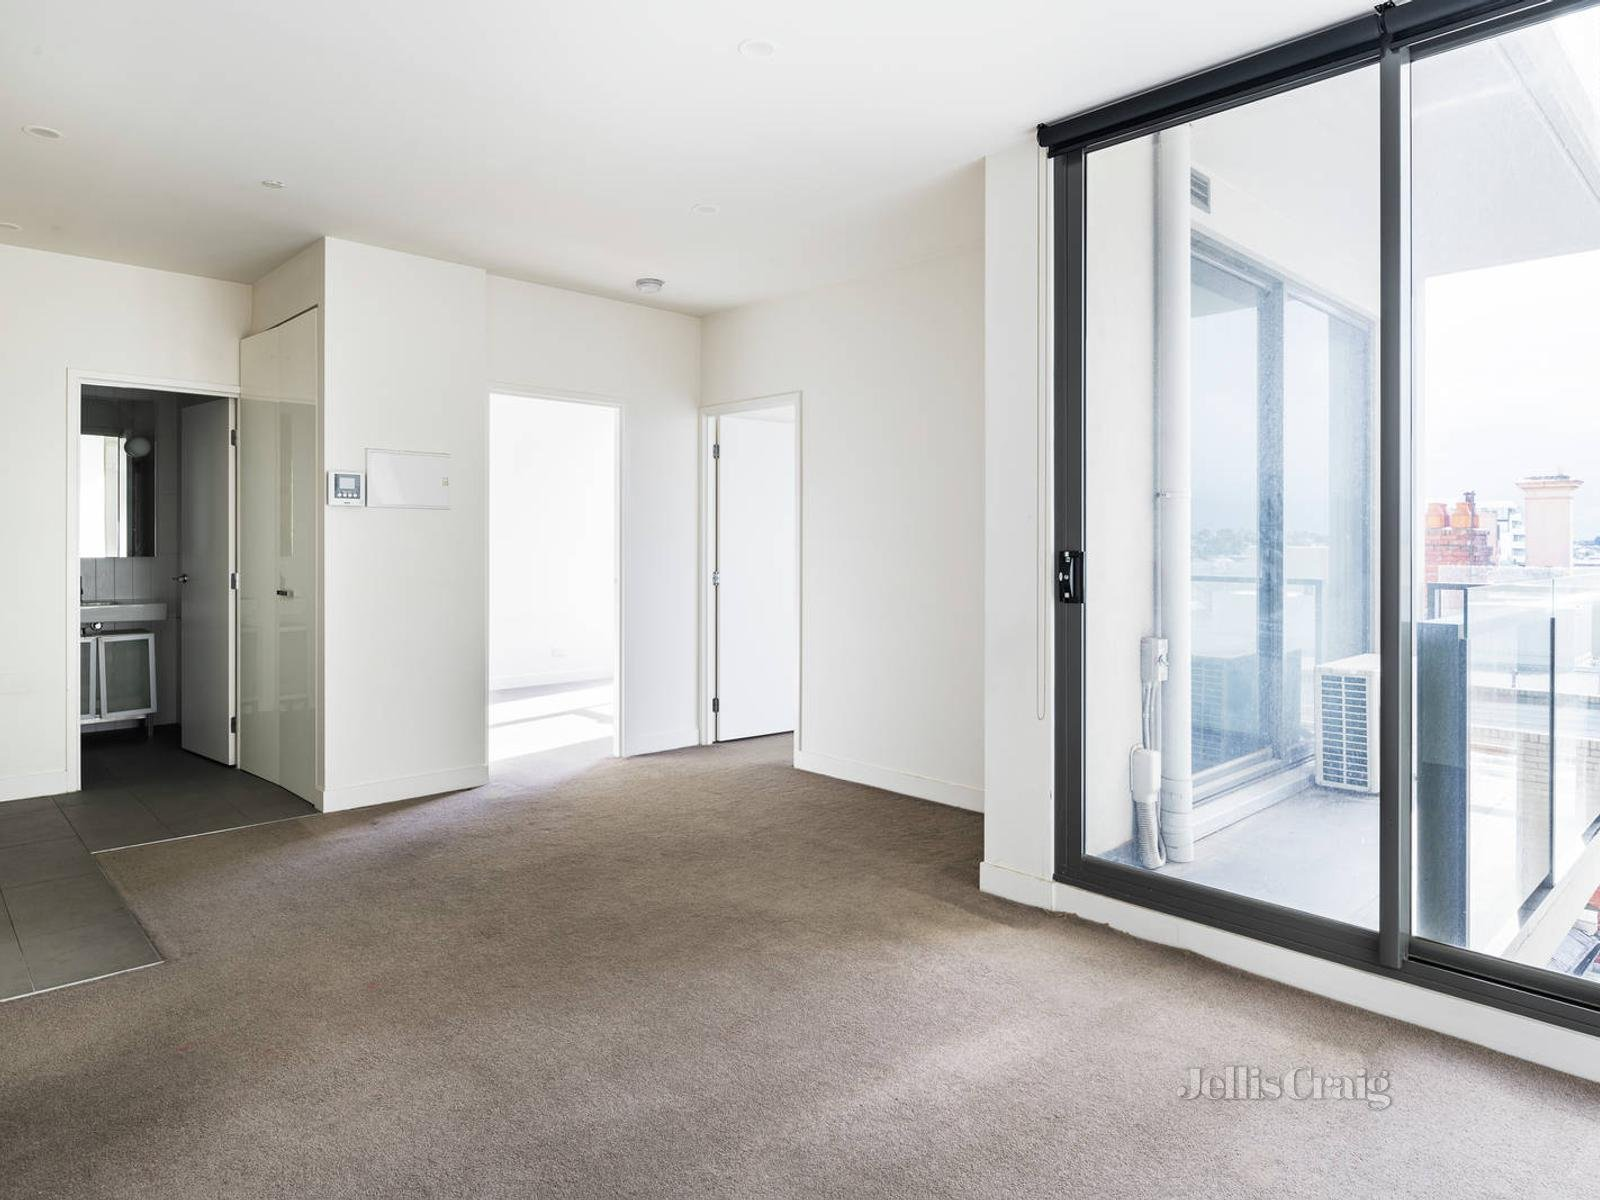 212/332 High Street, Northcote - Print Image 1